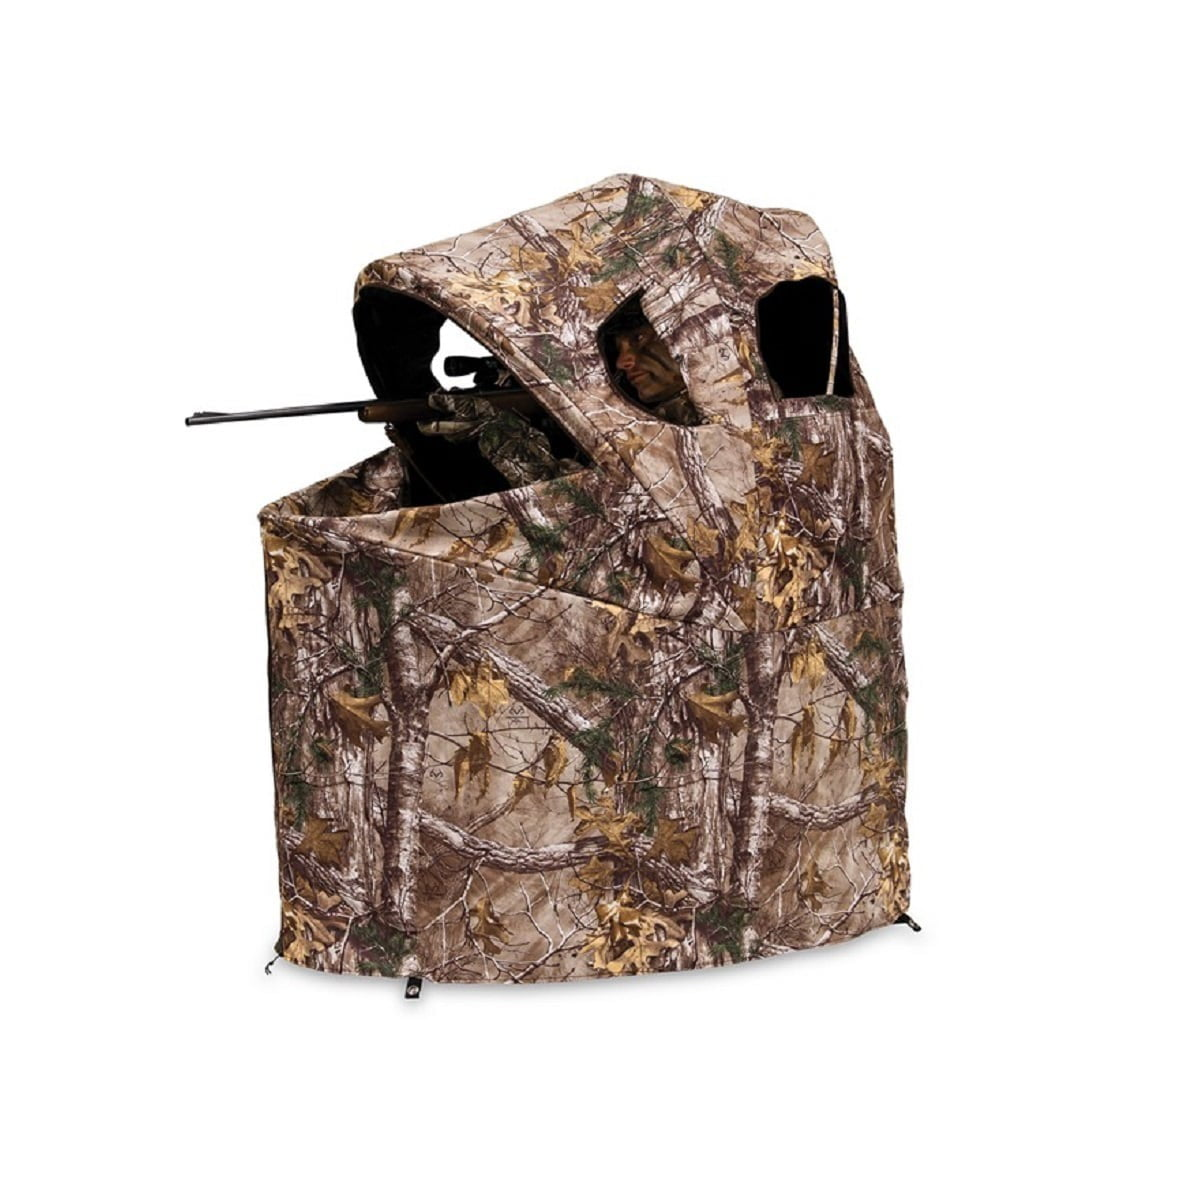 Hunting Blinds - Walmart.com